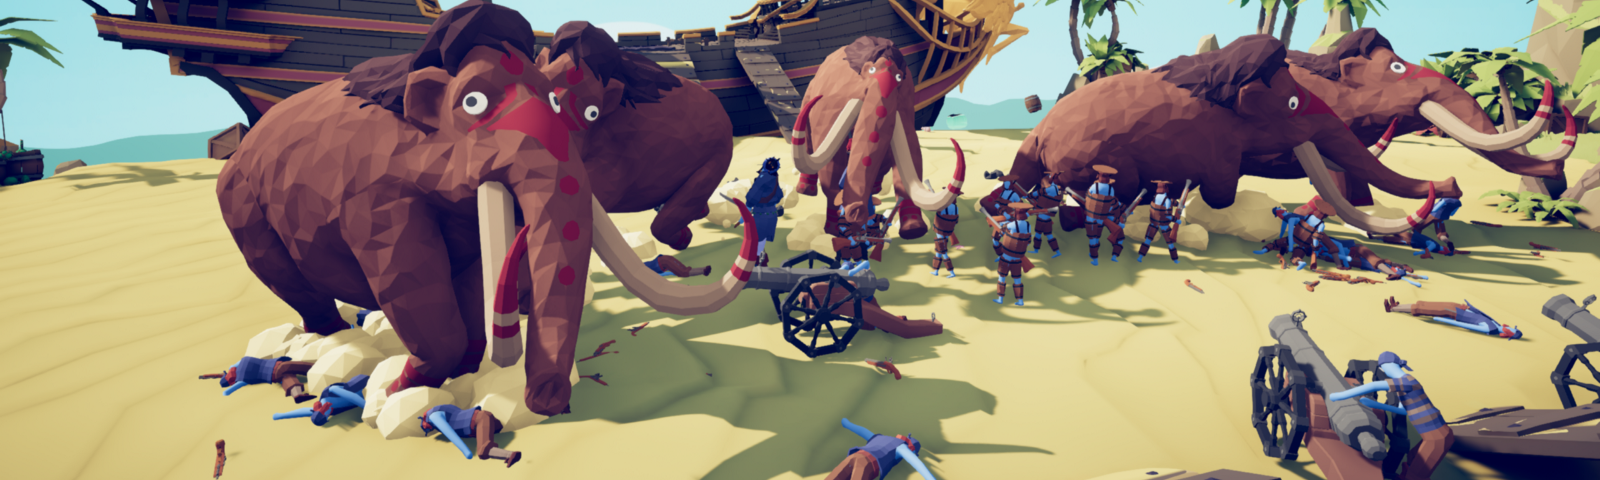 totally-accurate-battle-simulator-mammoths-pirates